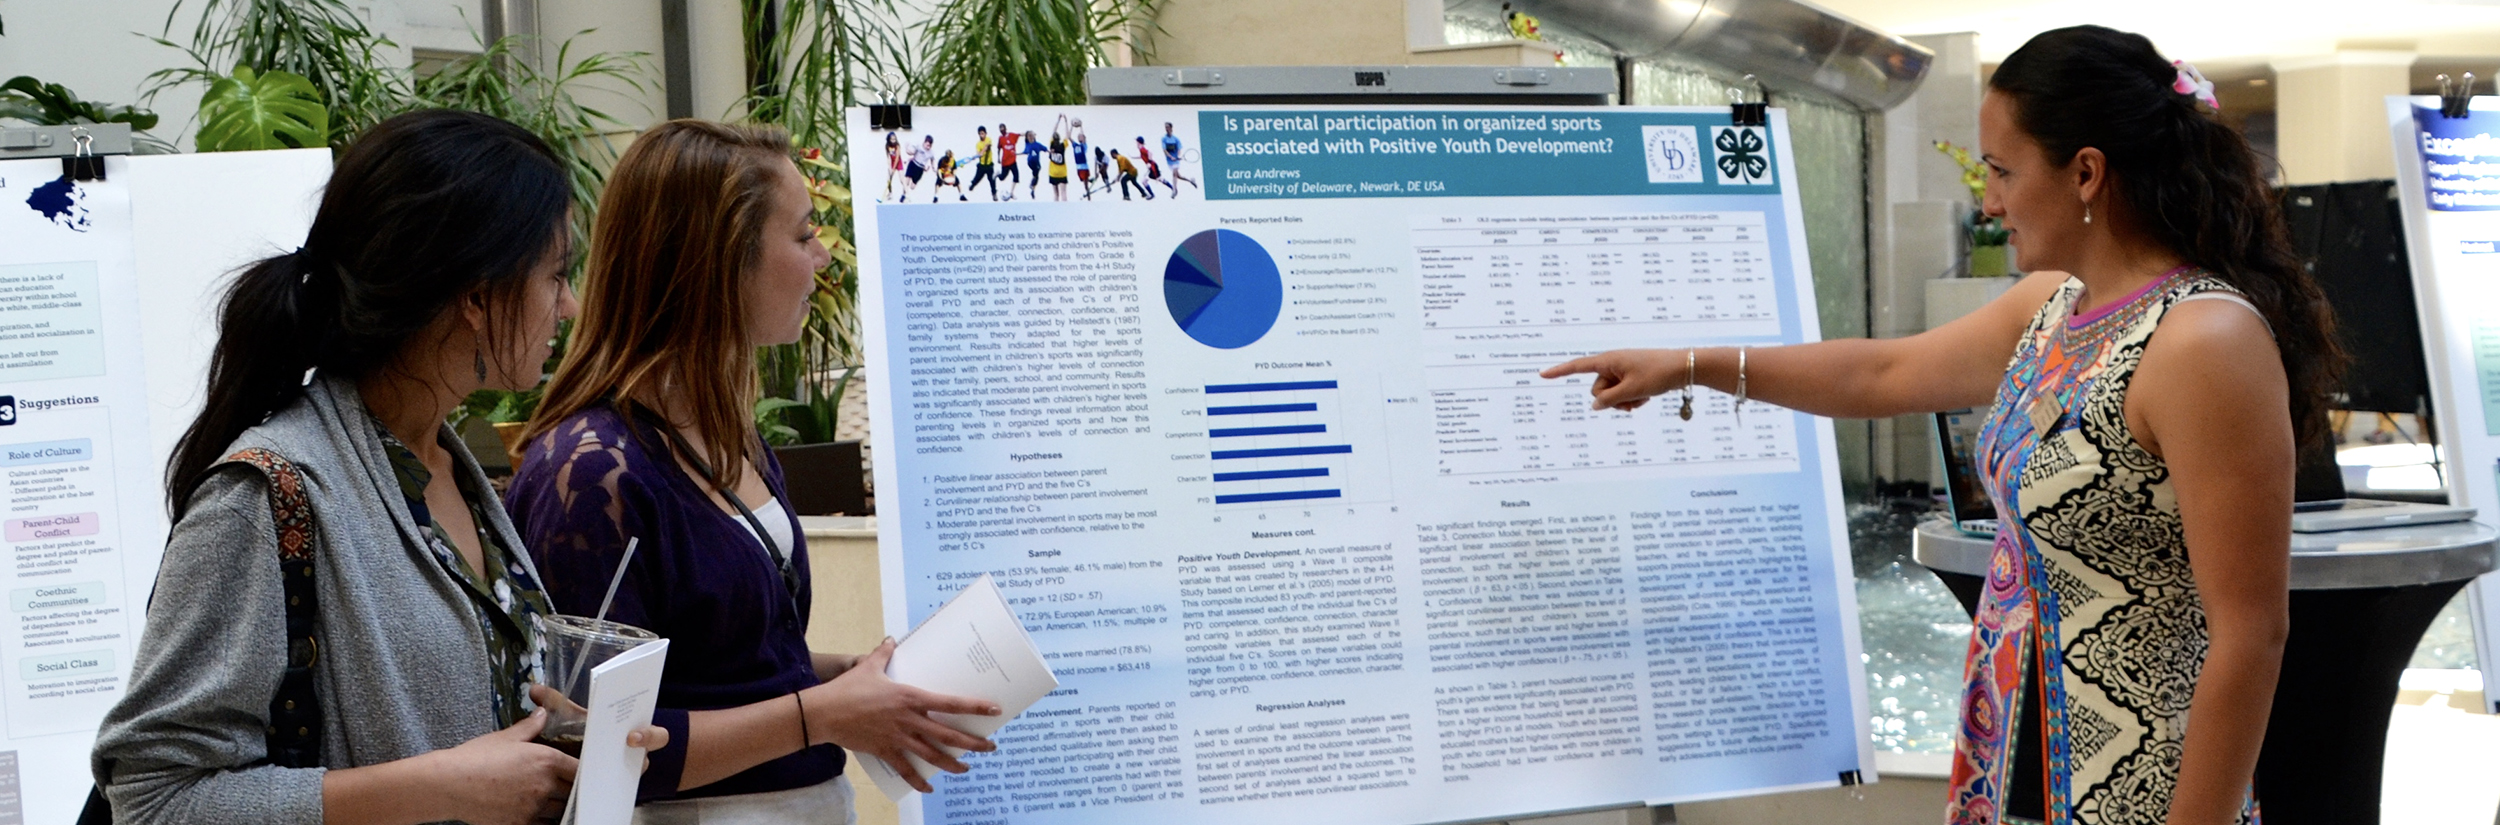 Student shows research poster at Steele Symposium